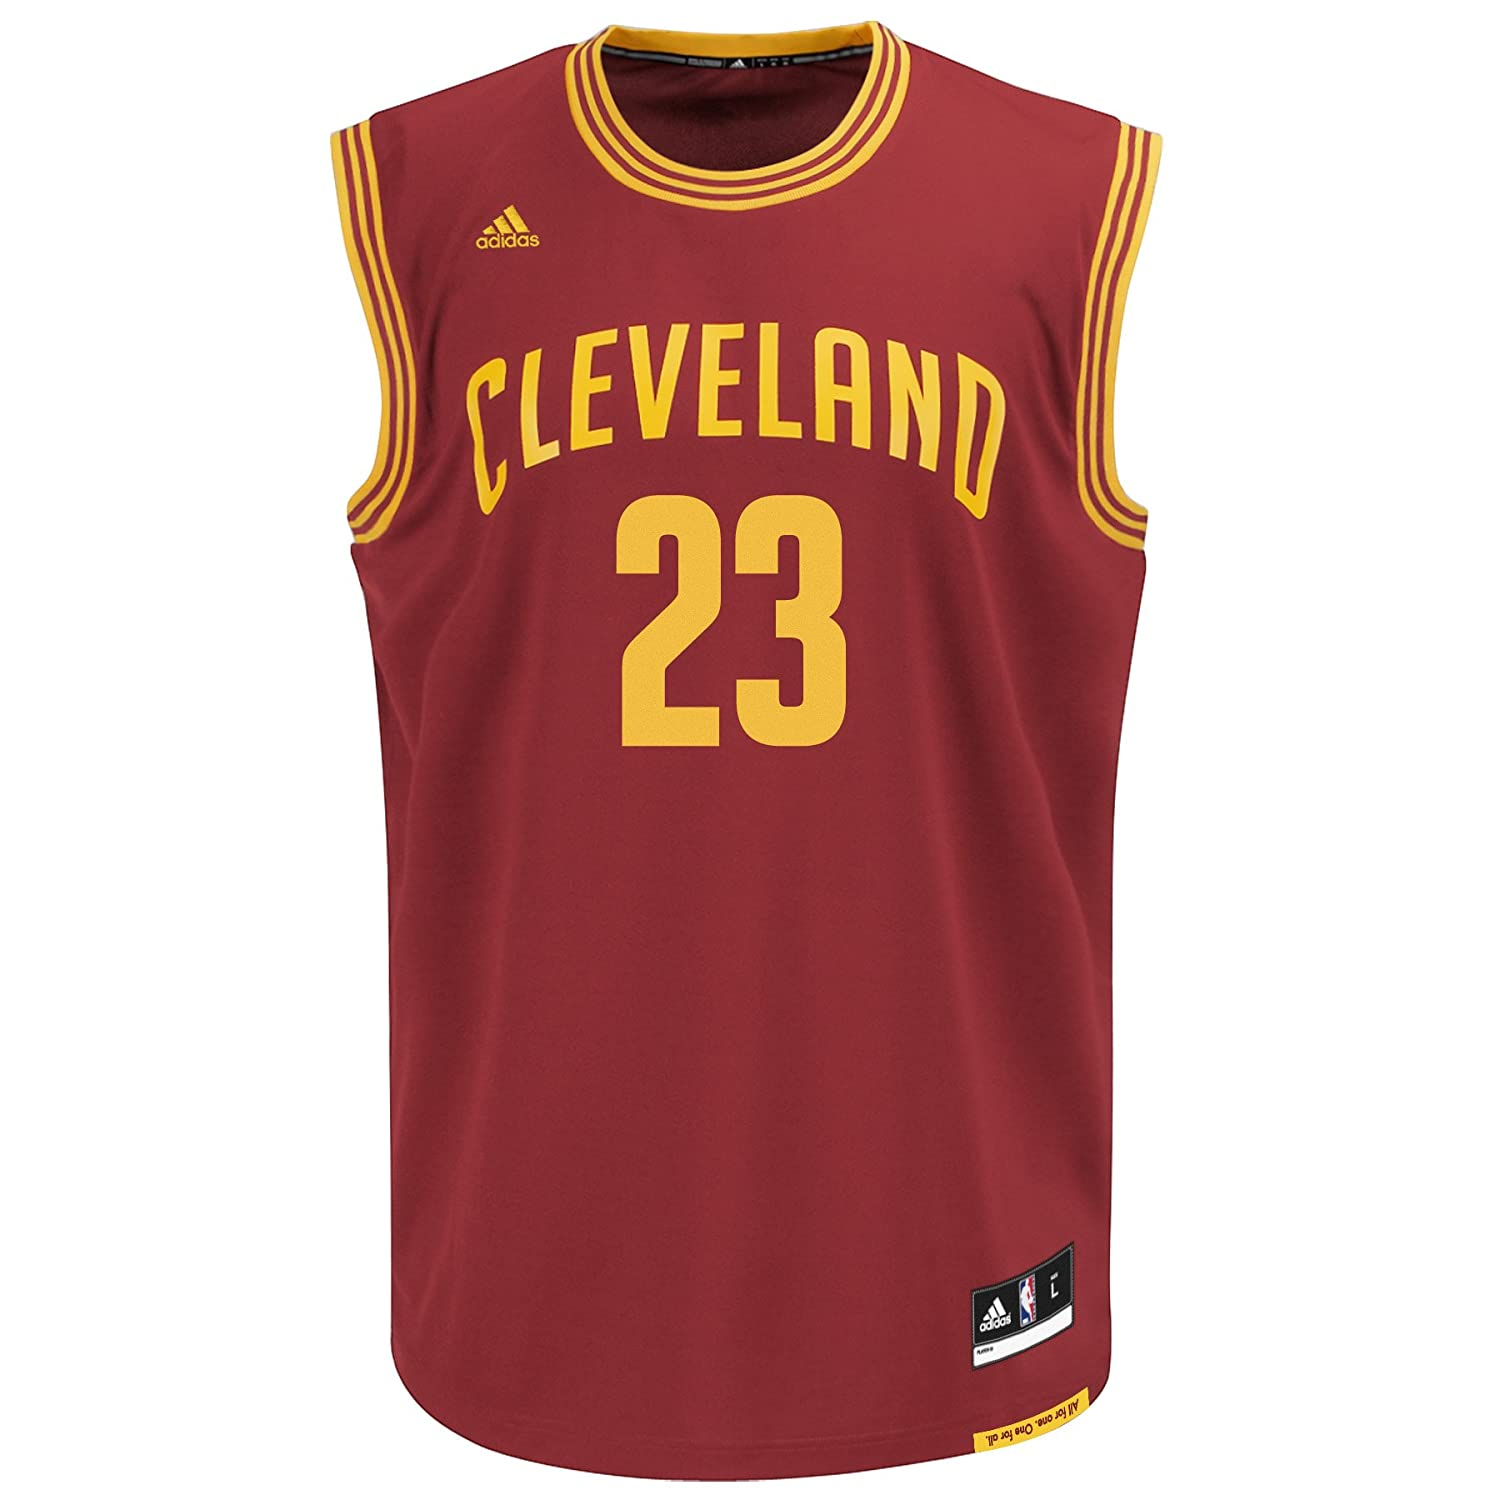 NBA Cleveland Cavaliers, LeBron James, Replica Road Youth Jersey, Large, Burgundy adidas adidas fc chelsea replica jersey